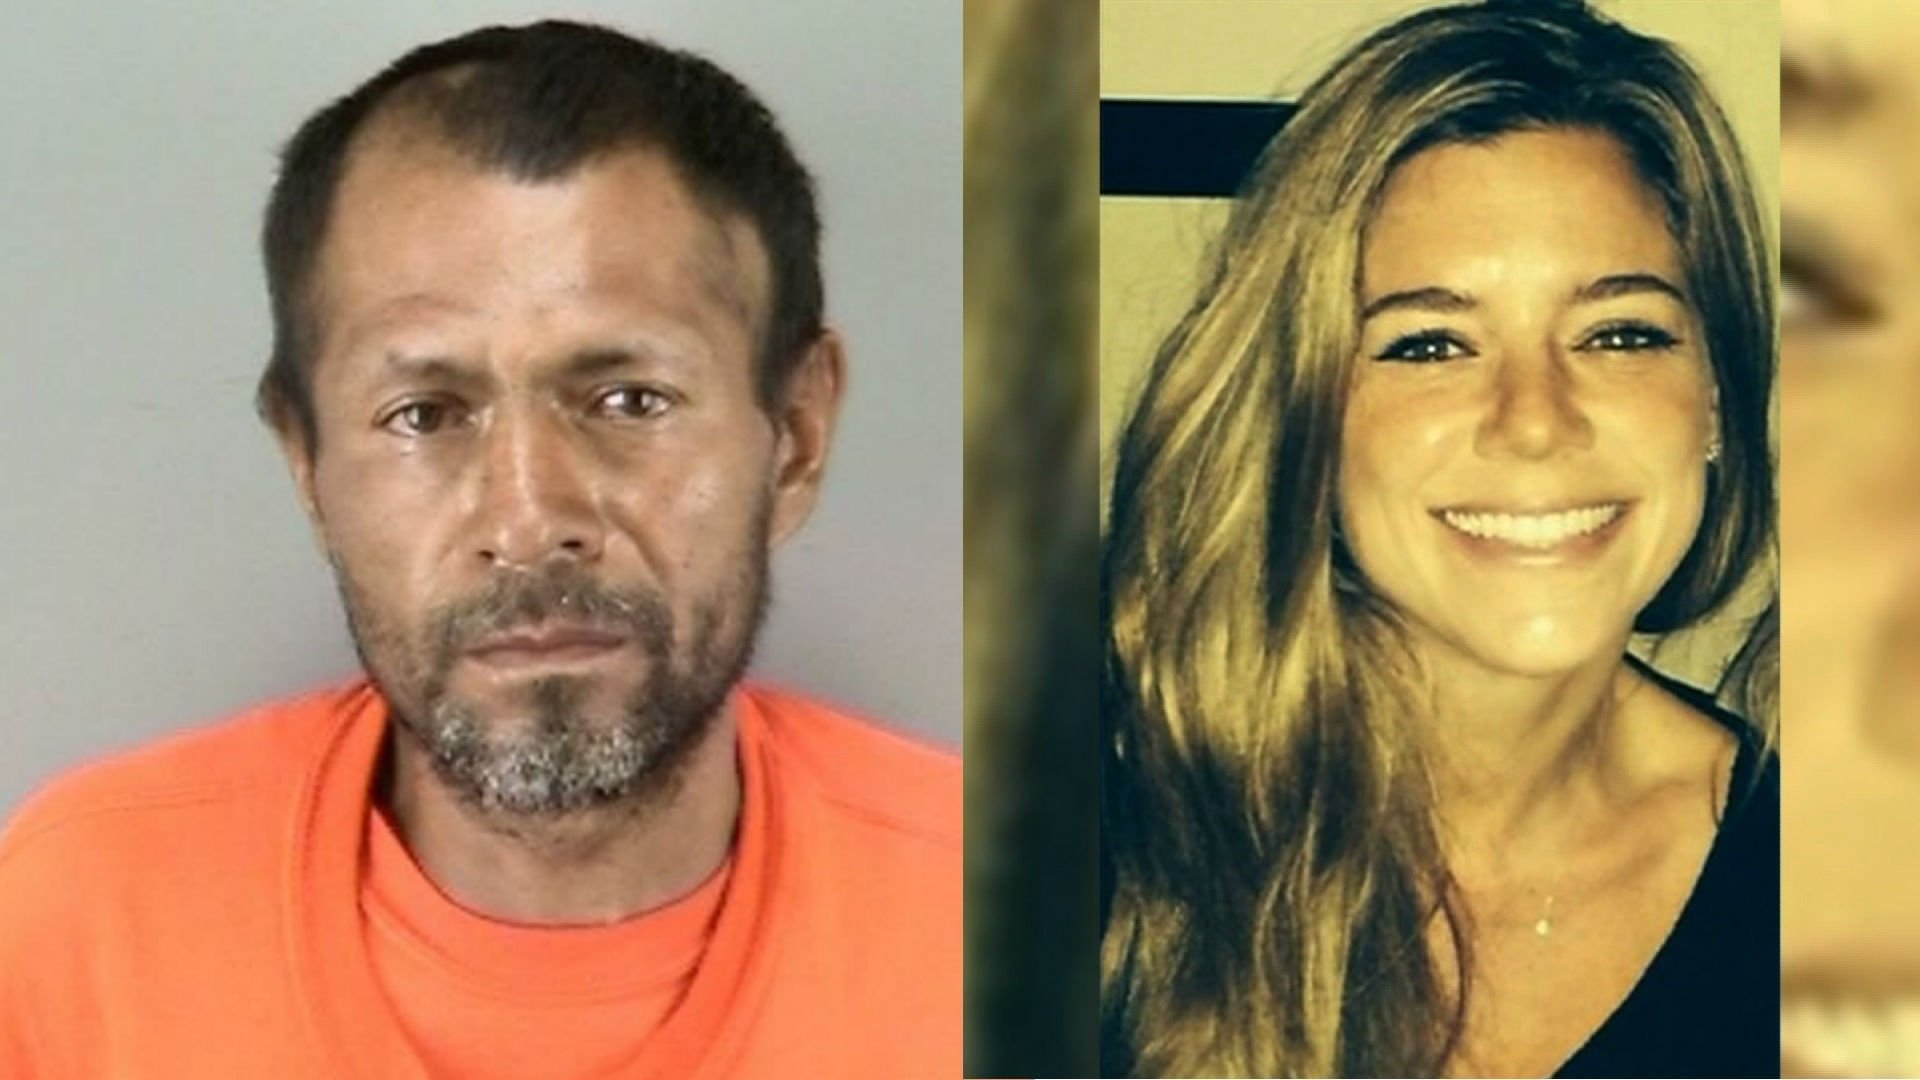 Kate Steinle (right) was shot and killed on July 1, 2015 near San Francisco's Pier 14. In an interview with CNN affiliate KGO, Juan Francisco Lopez-Sanchez (left) admitted that he shot Steinle but that the shooting was an accident. photo courtesy of CNN